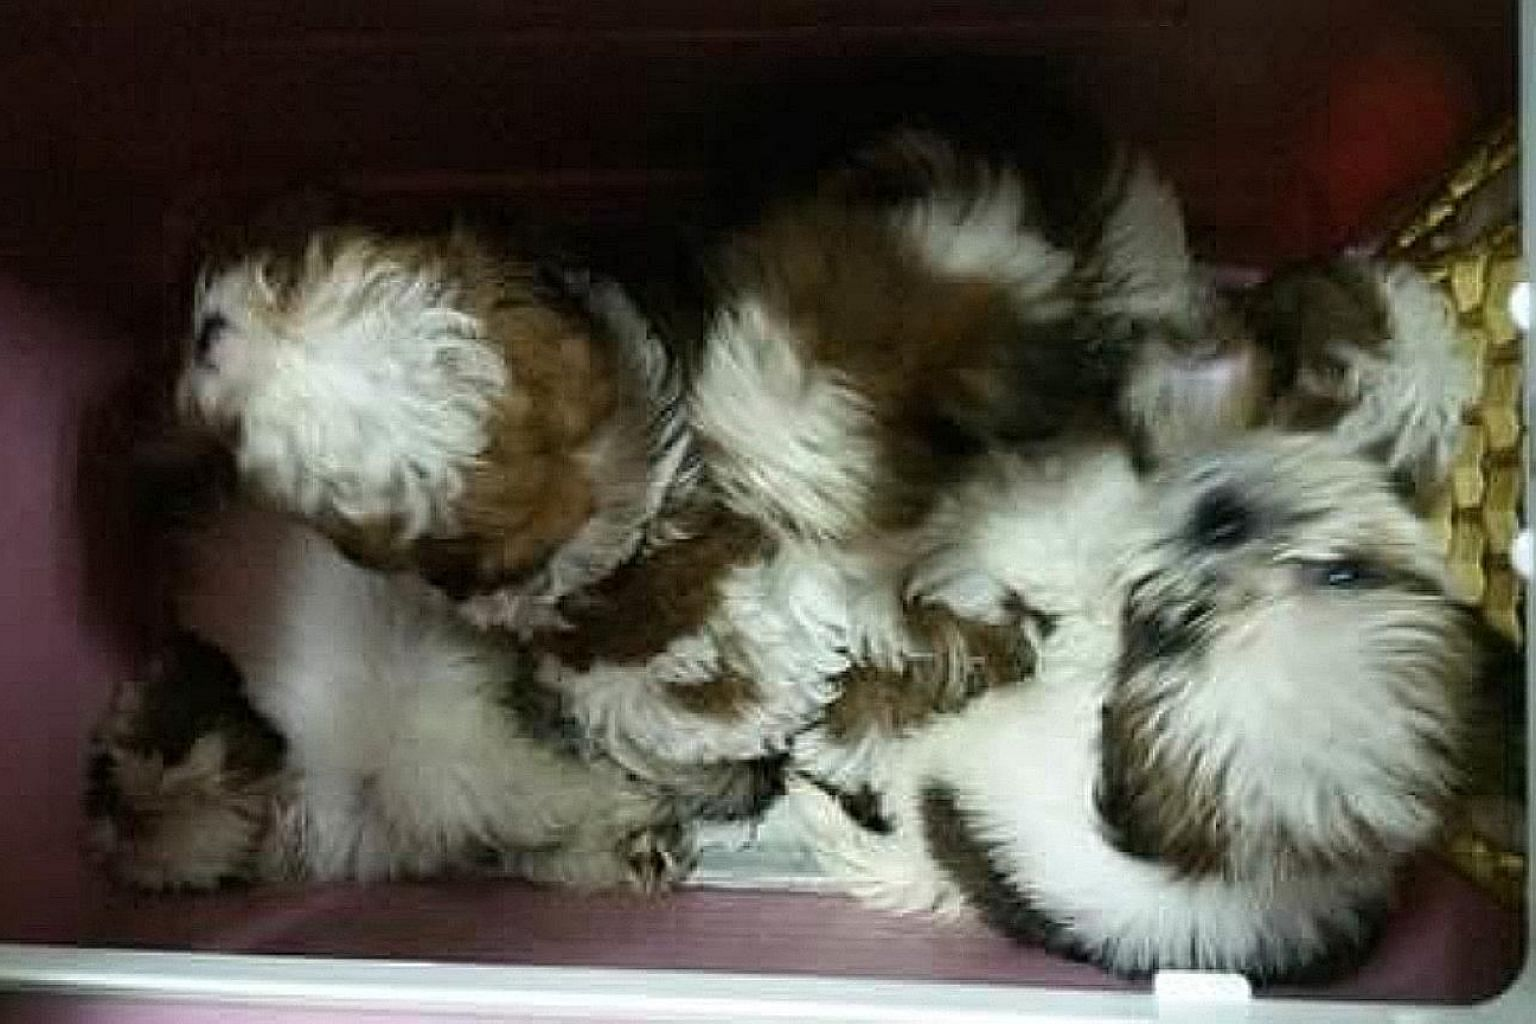 The smuggled puppies were kept in cramped conditions, with no food or water given to them.